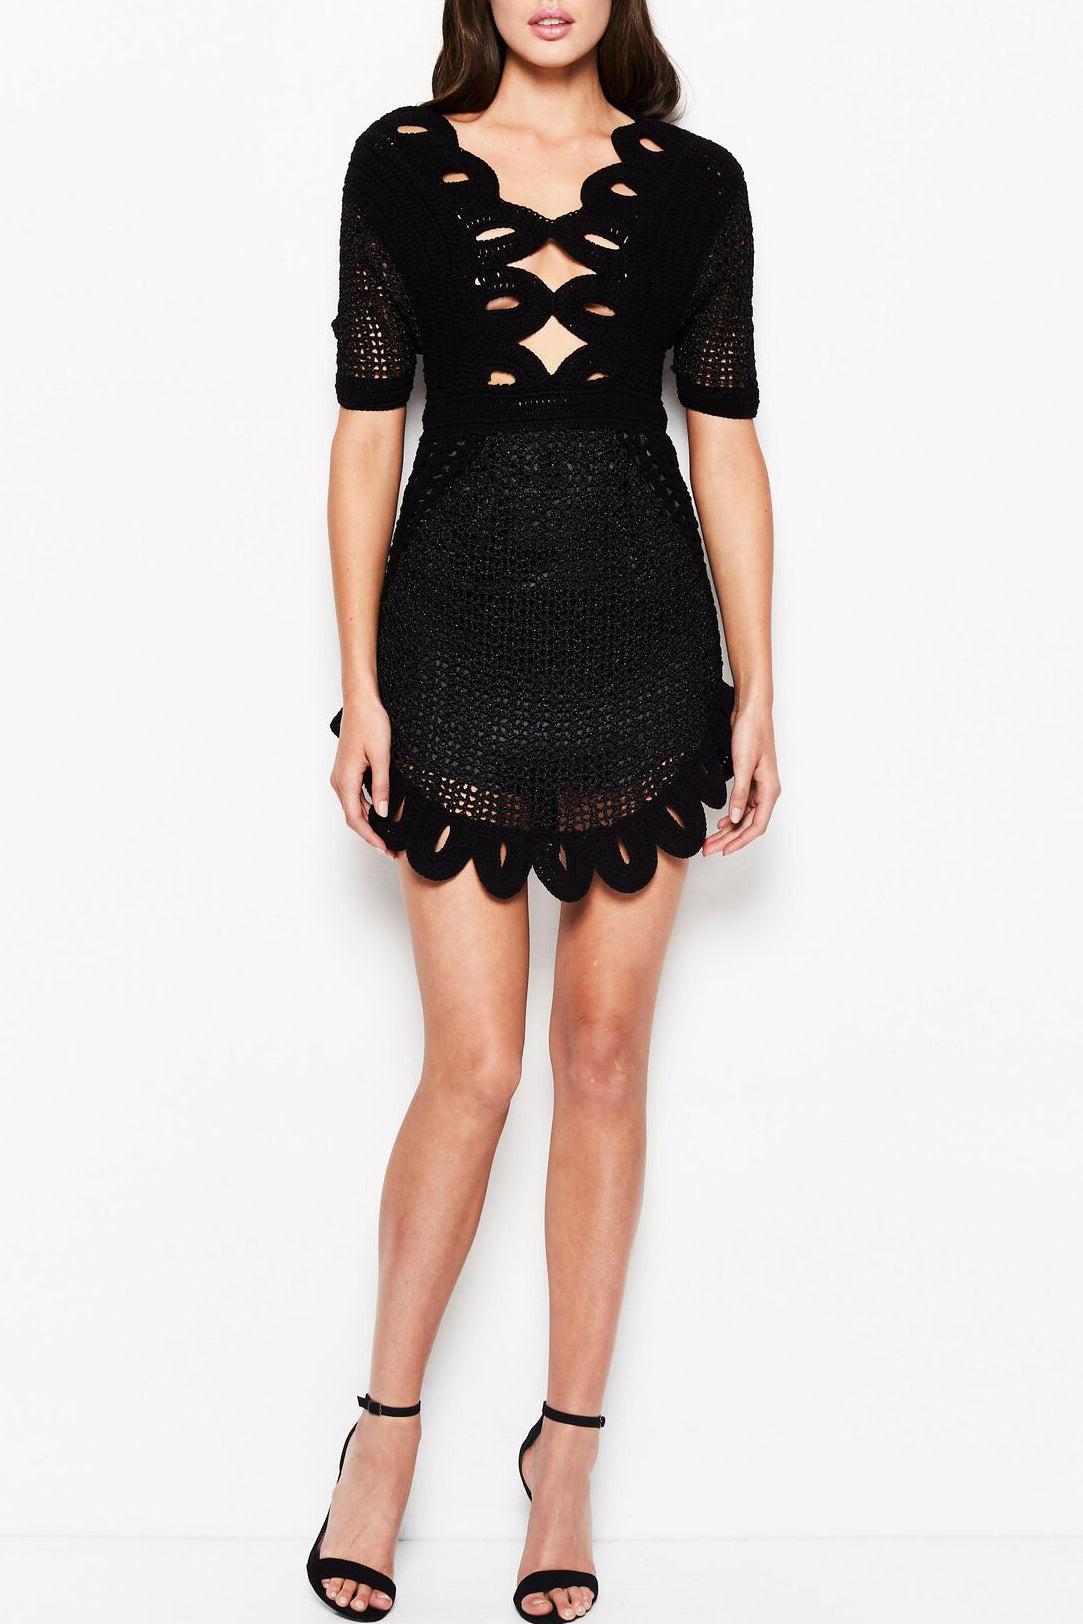 8f8afd8a81a2 Alice McCall Everybody Knows Dress Black – Room 29